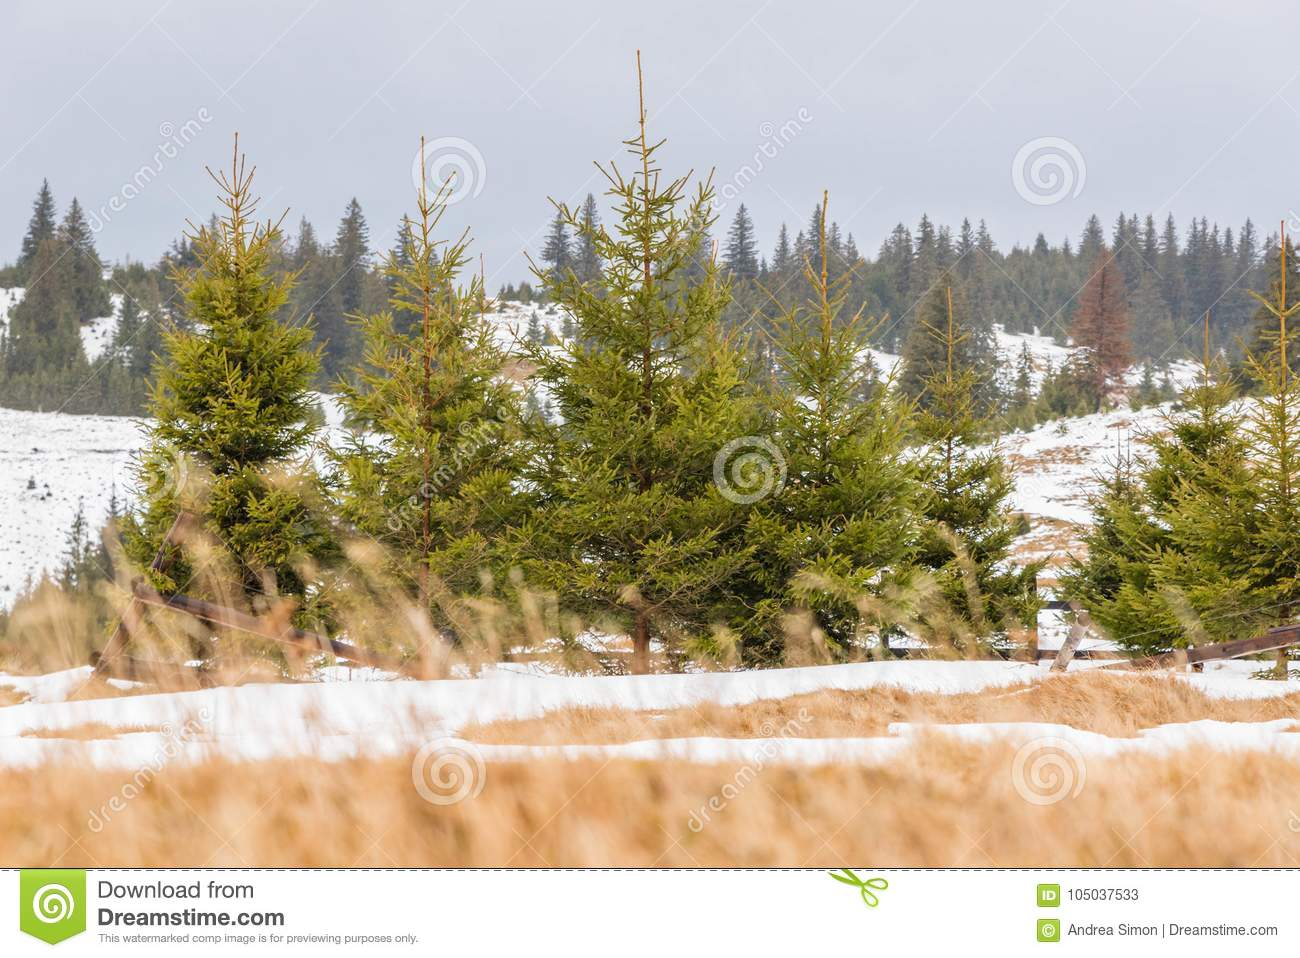 Winter landscape with pine trees